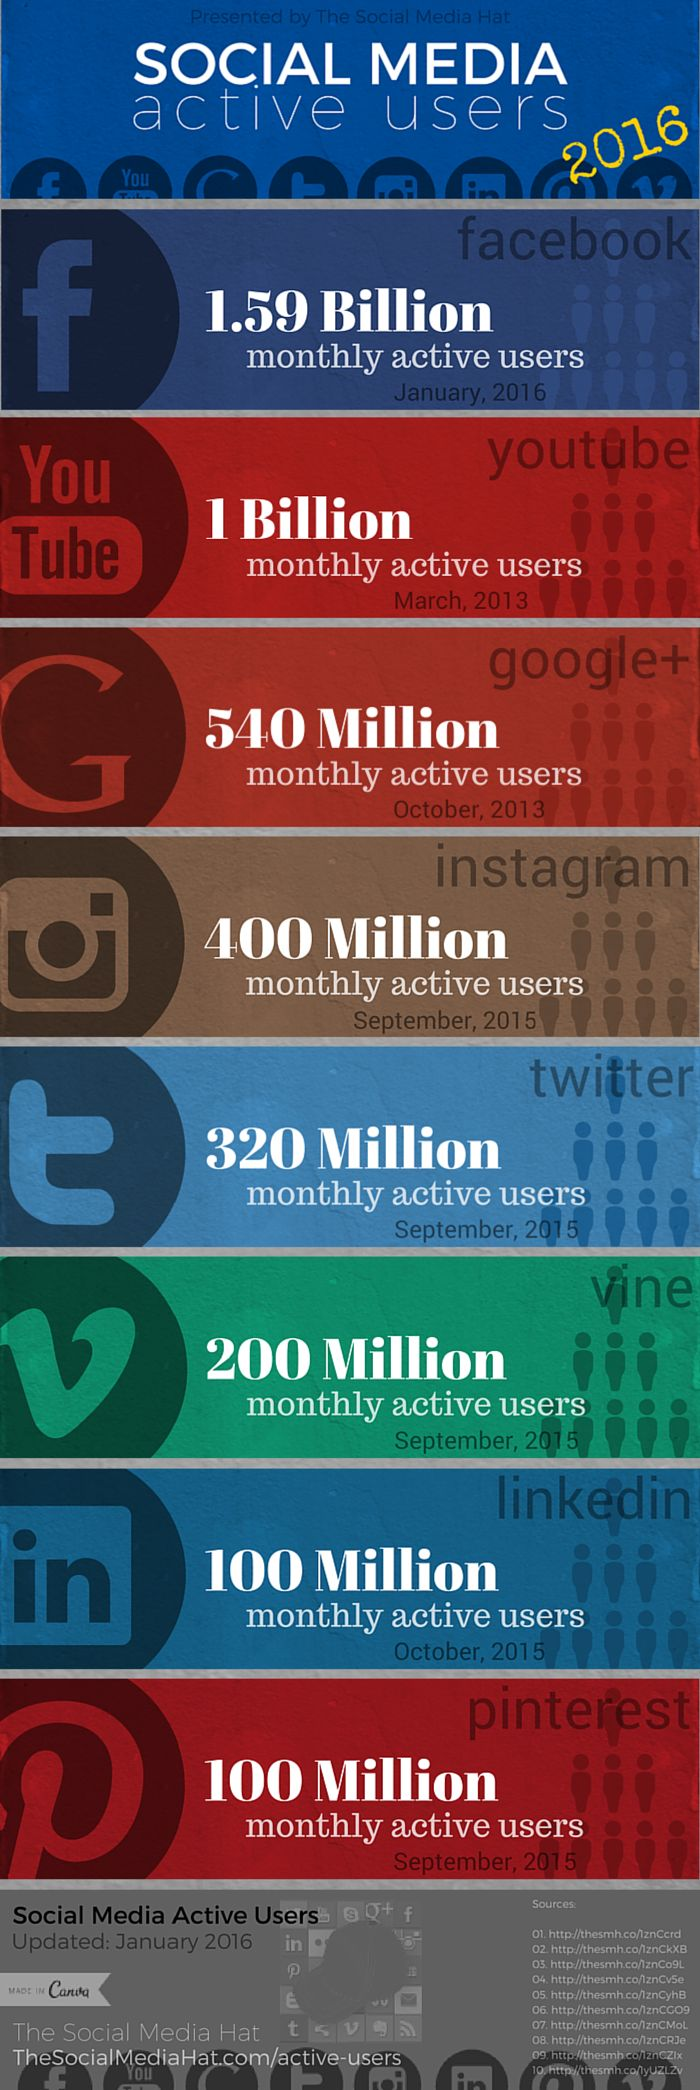 Active User Counts for All Major Social Networks by The Social Media Hat